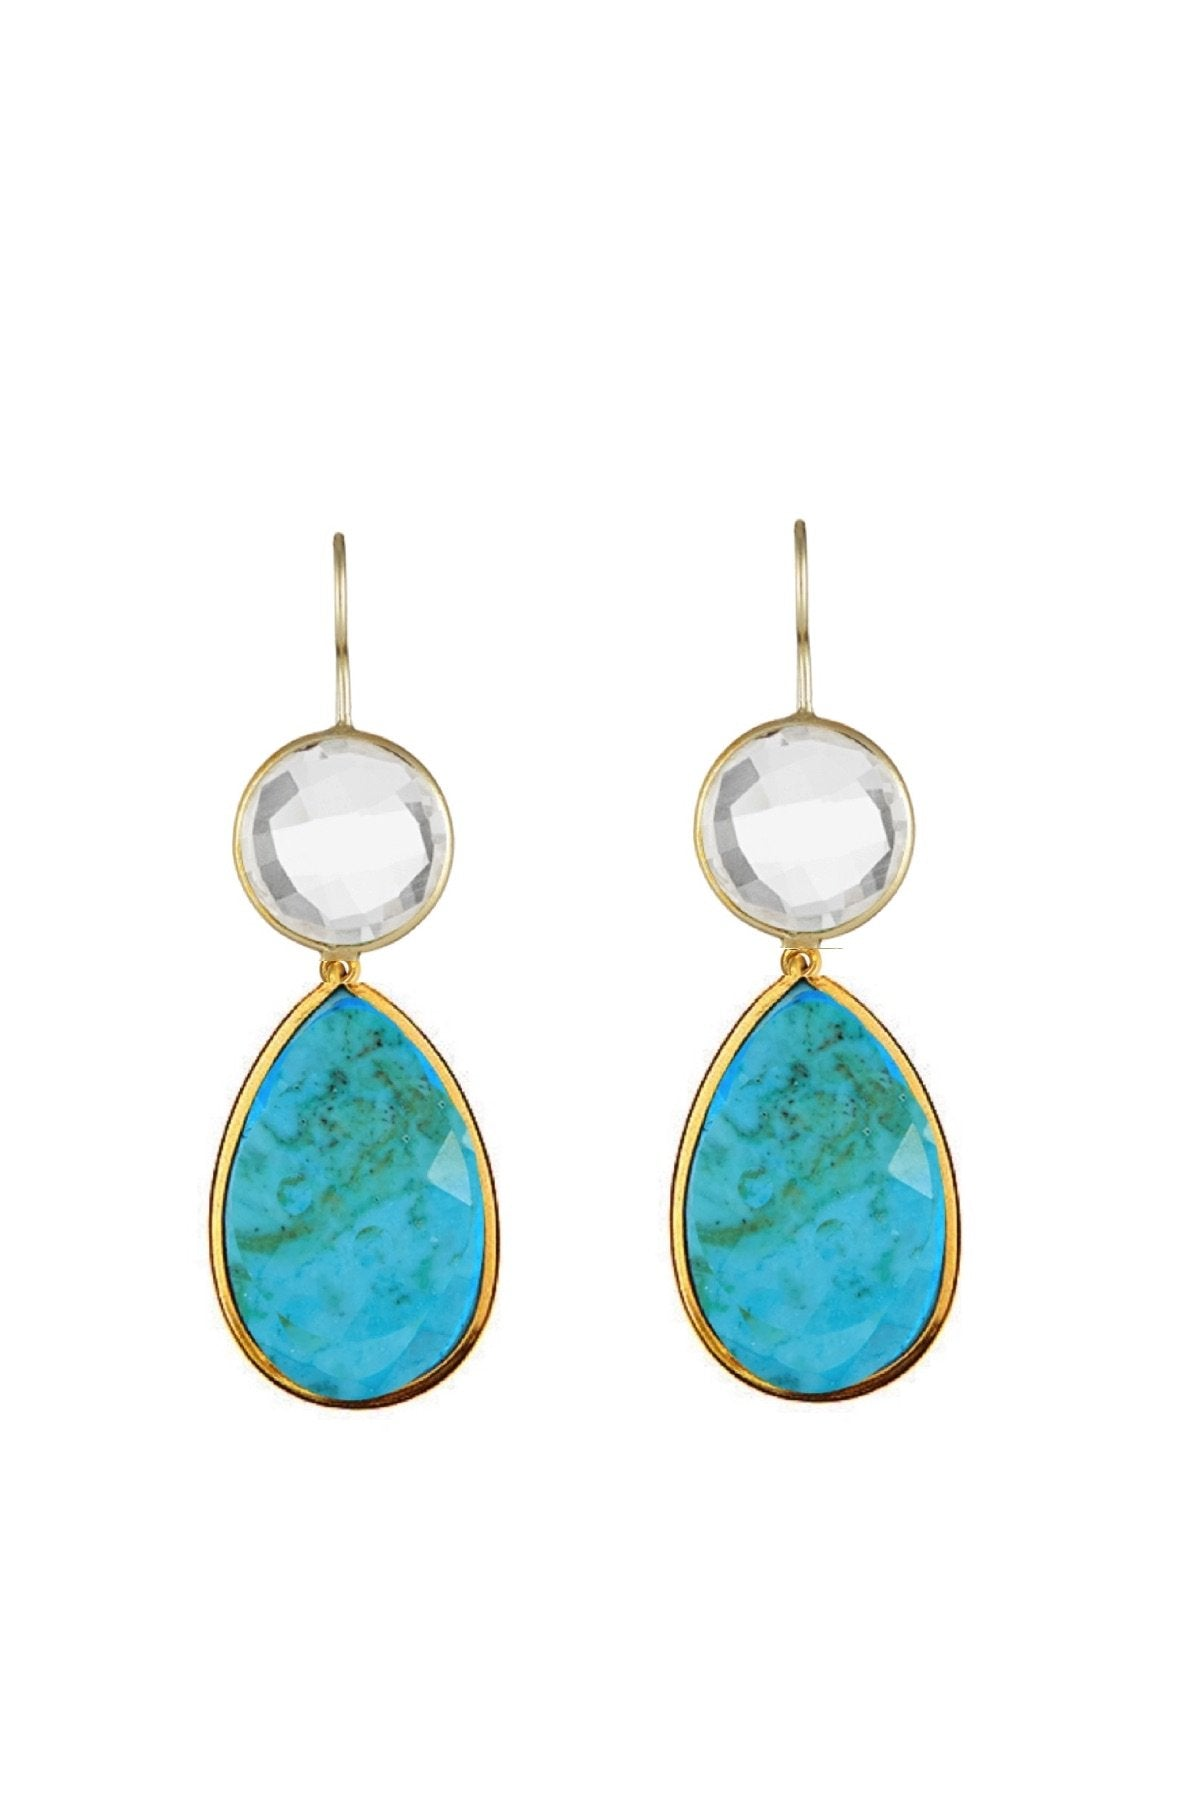 18K Gold Clear Quartz & Turquoise Pear Drop Earrings